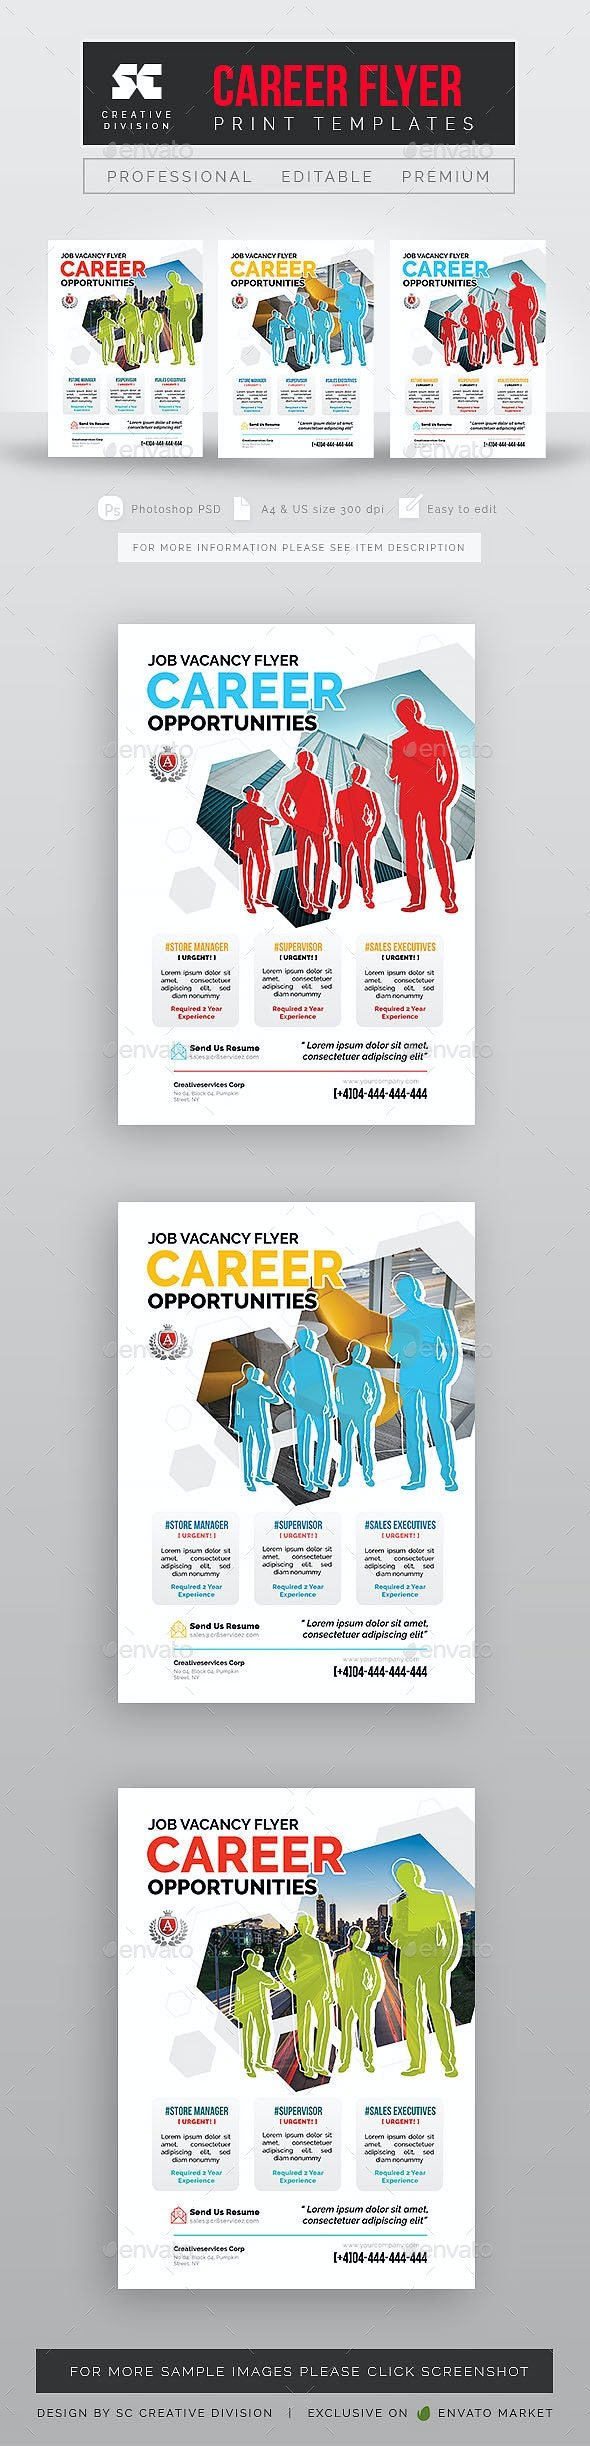 Career Vacancy Flyer - Corporate Flyers